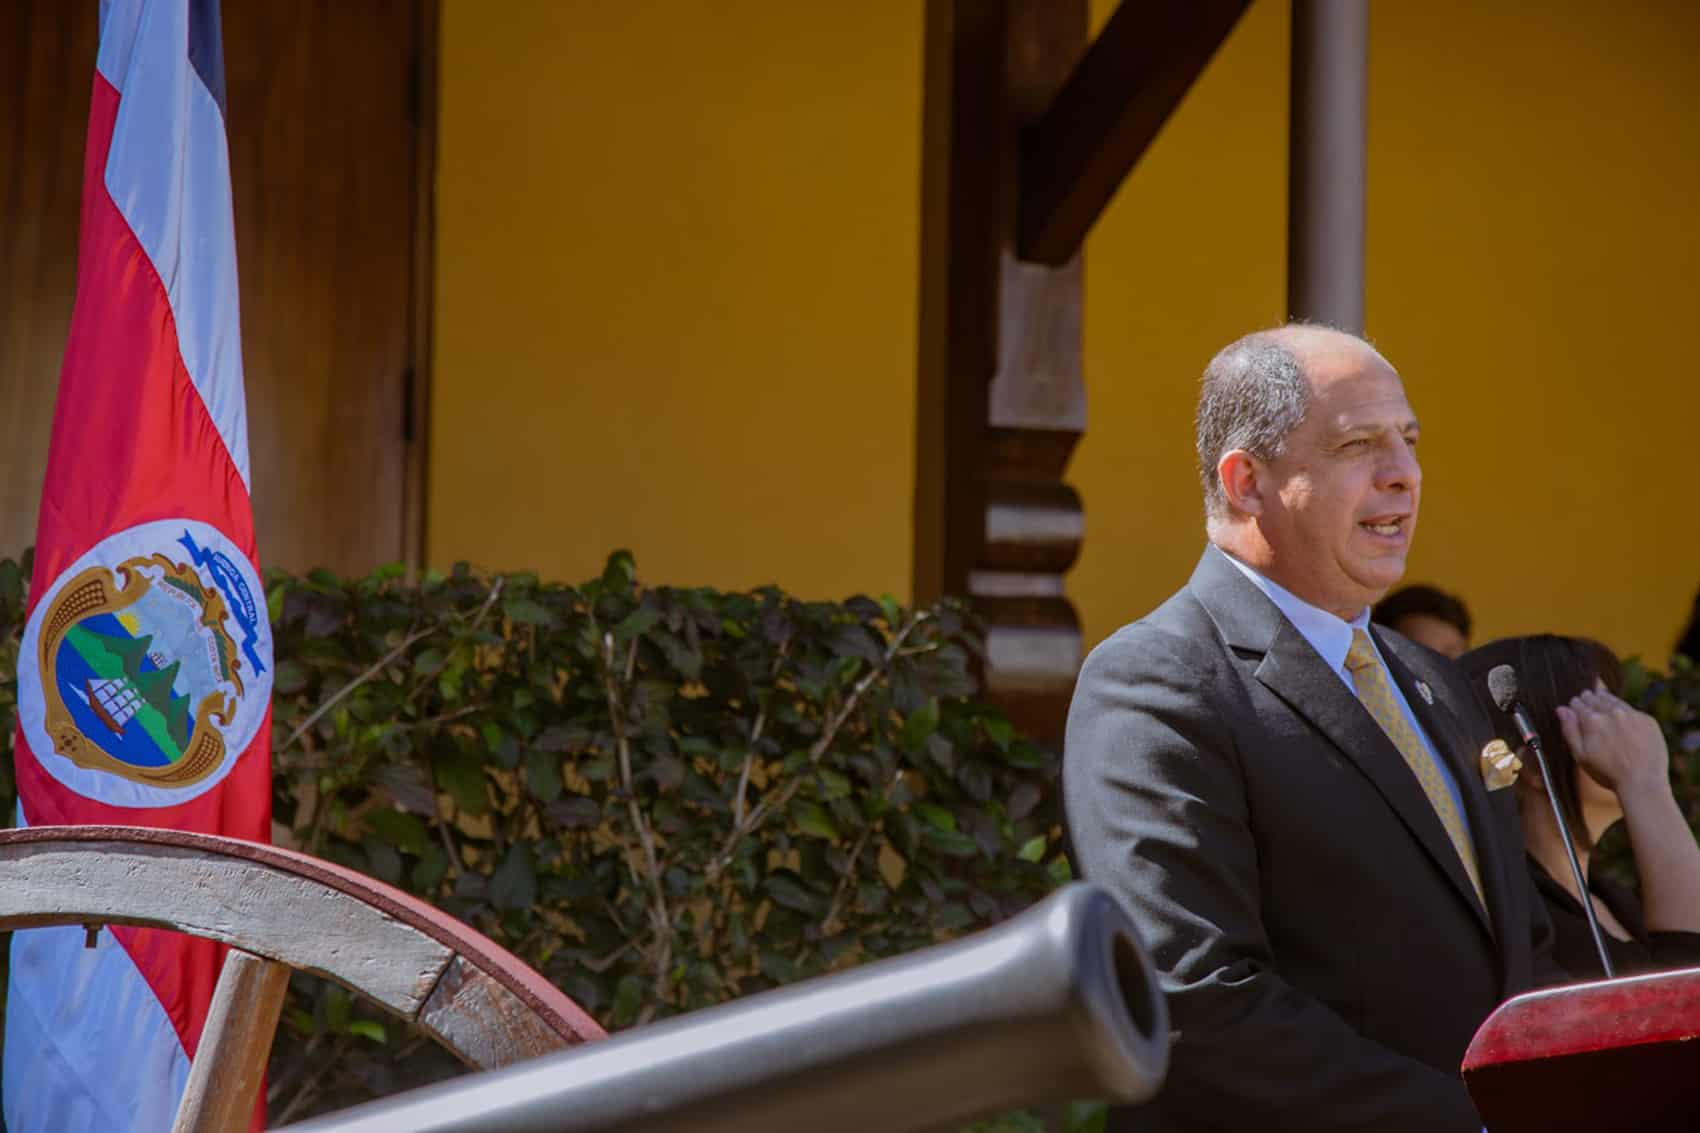 President Luis Guillermo Solís speaks at the National Museum